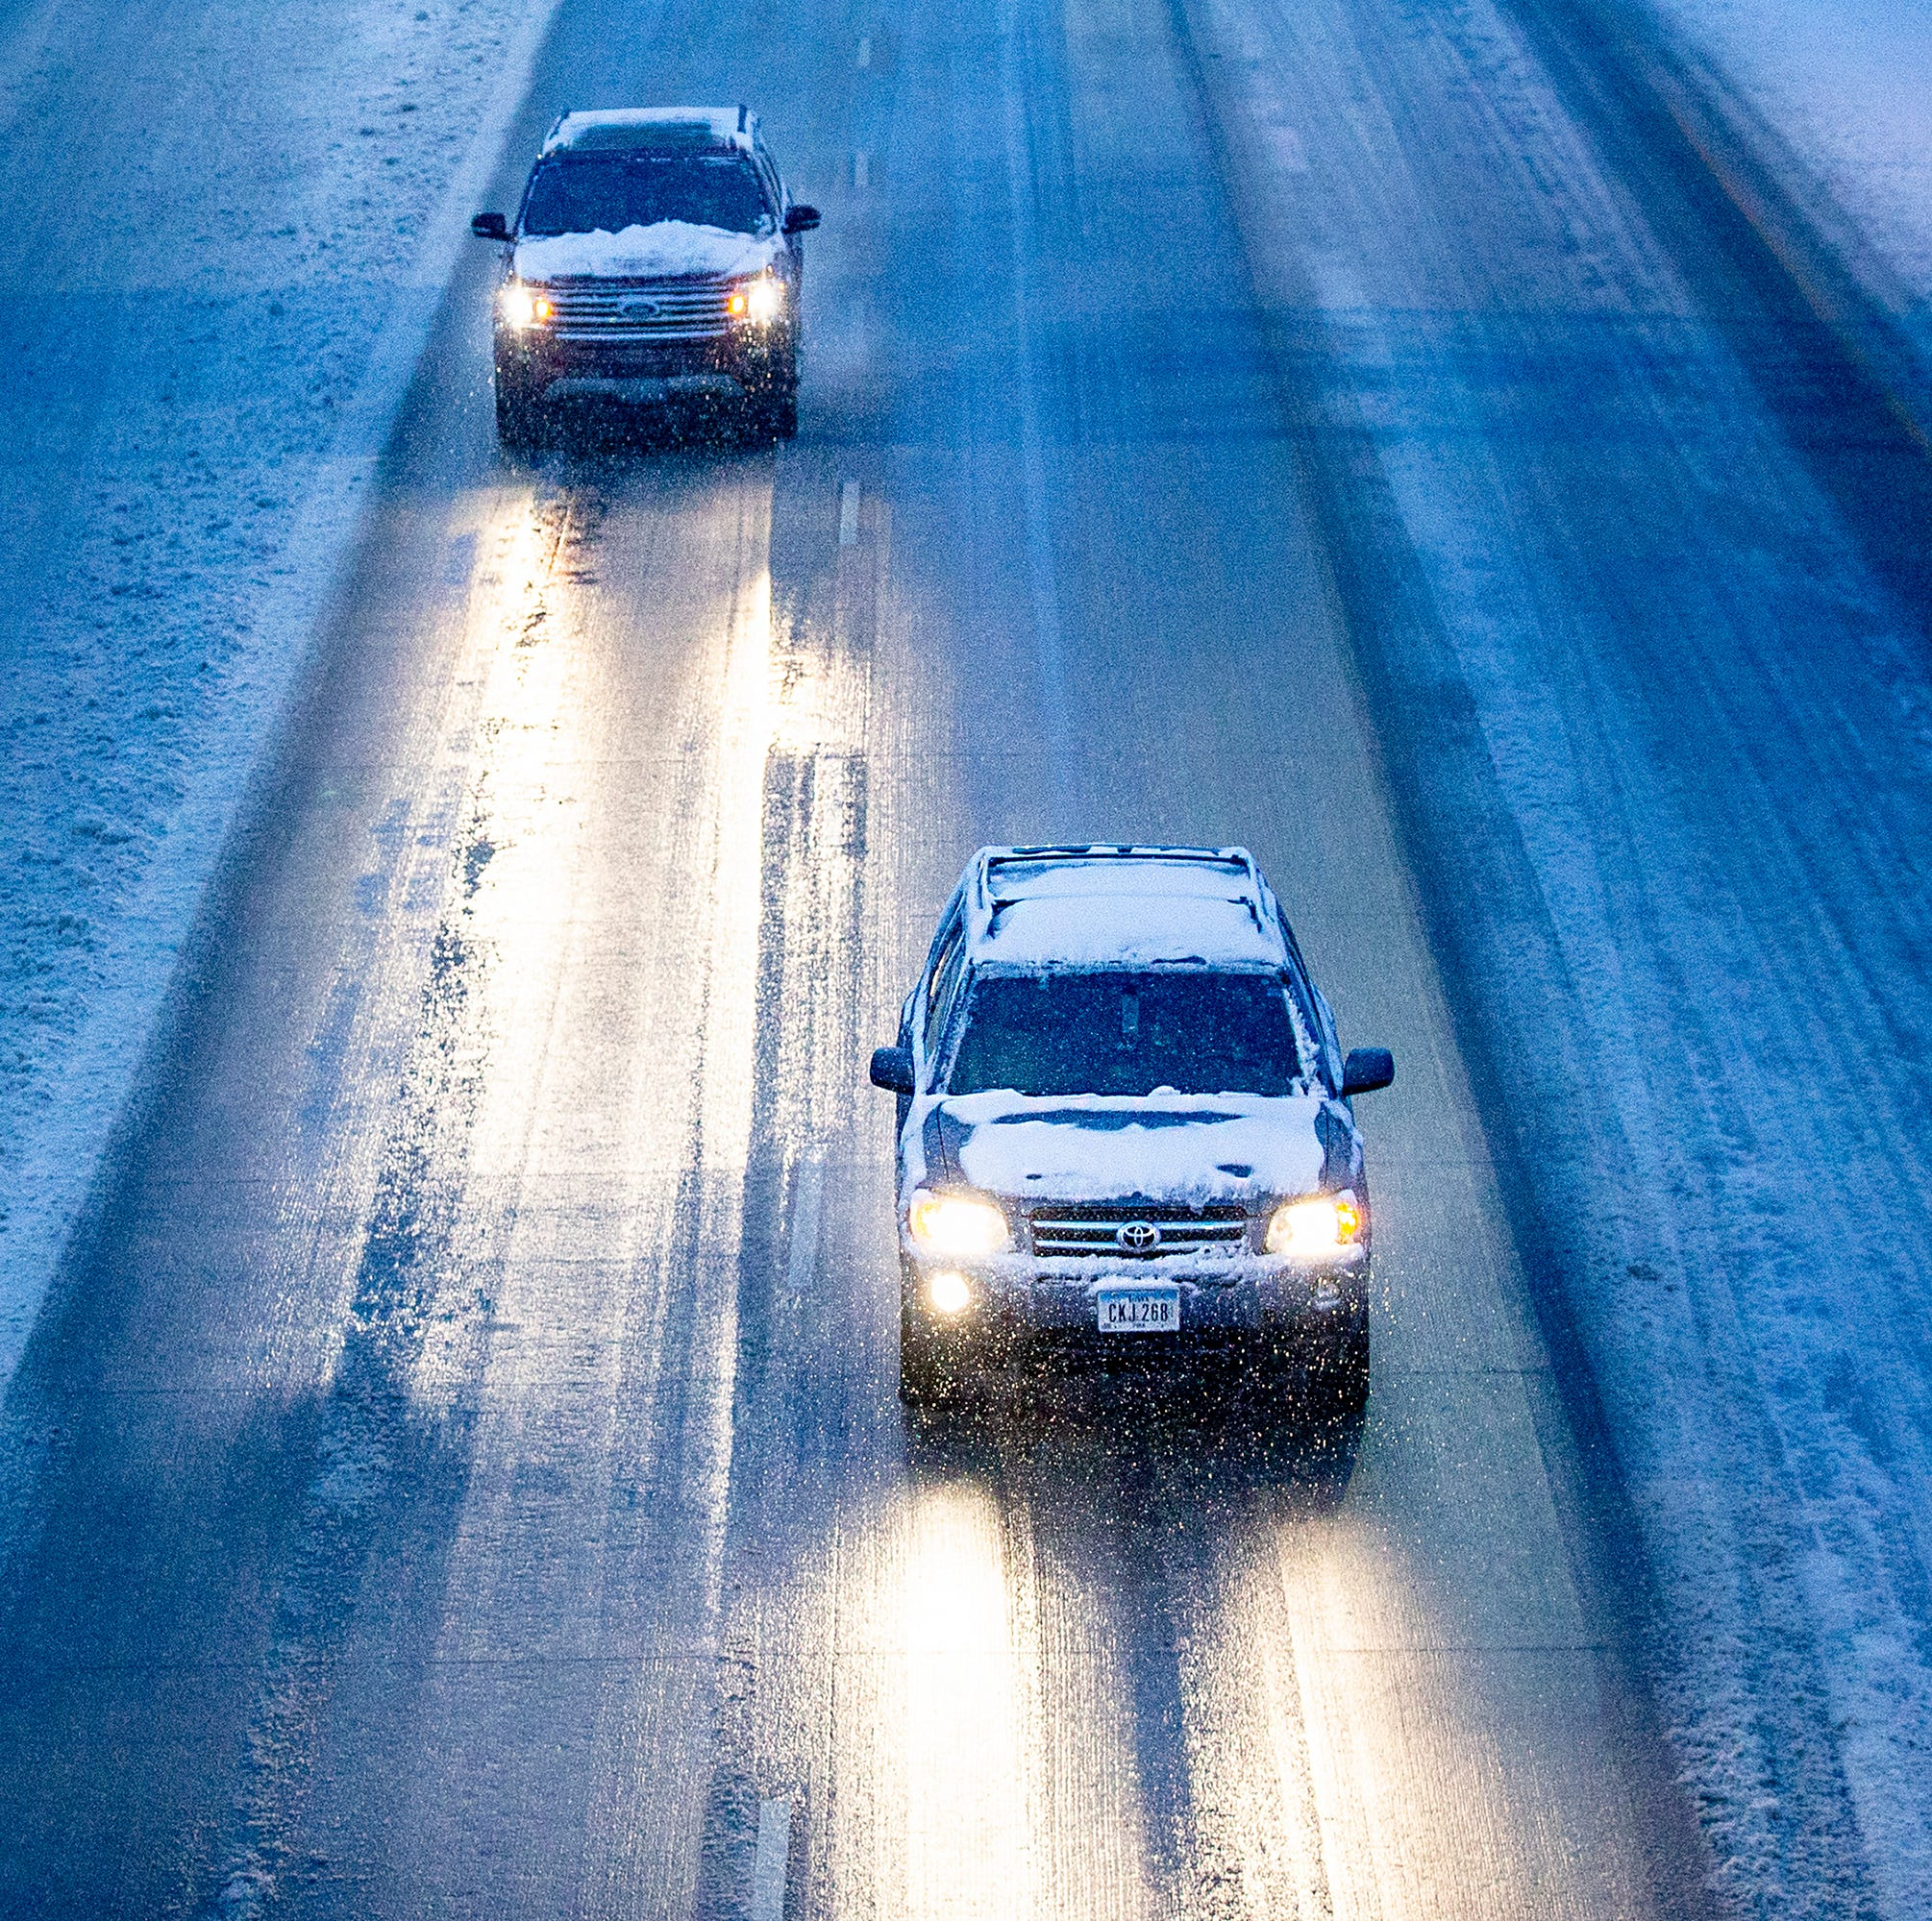 Iowa weather: Heavy snow and 'frostbite' temperatures forecast for the weekend